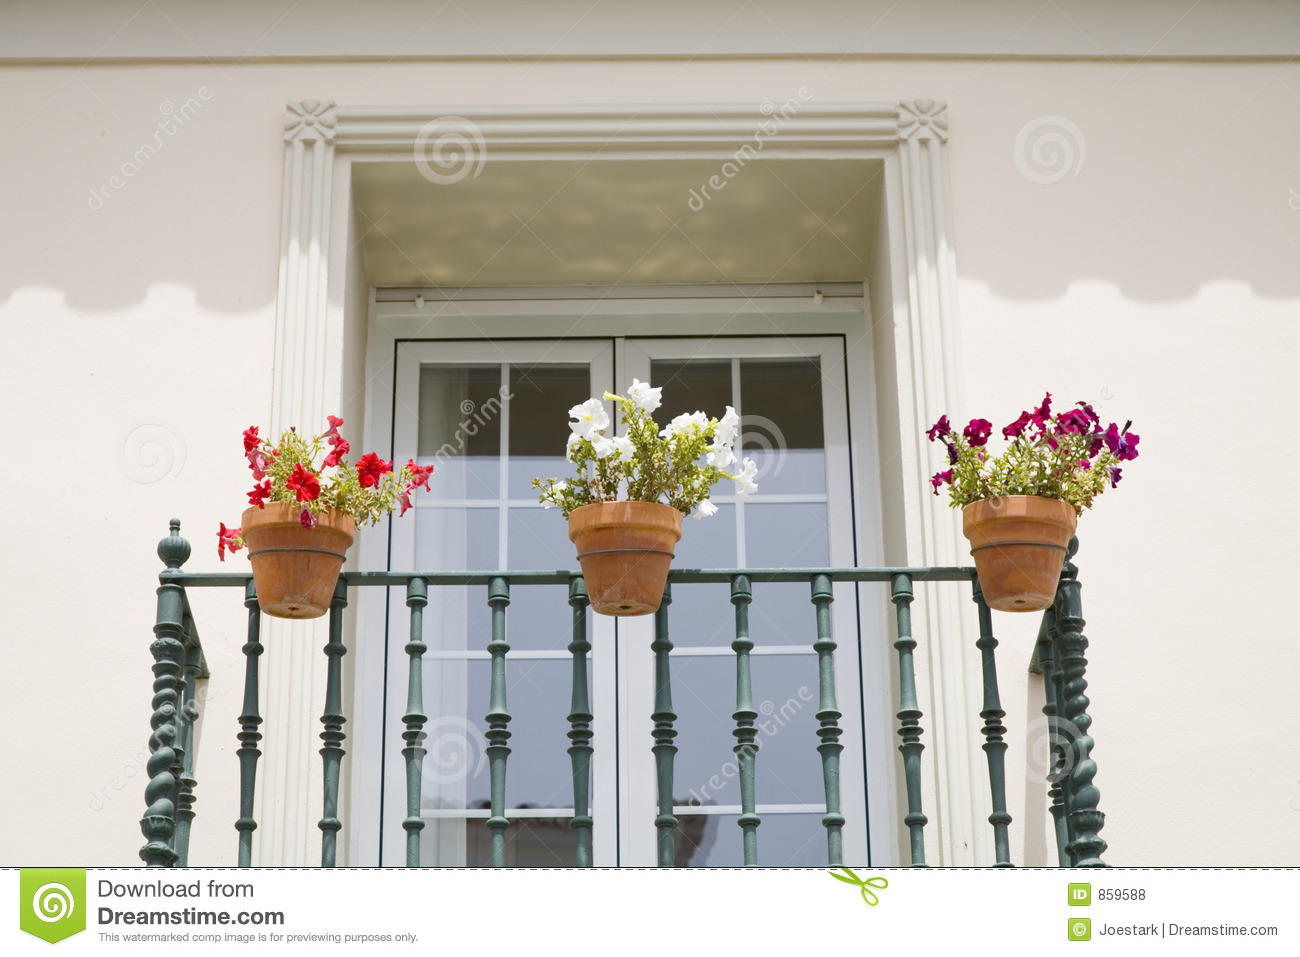 Spanish balcony royalty free stock photos image 859588 for Balcony in spanish